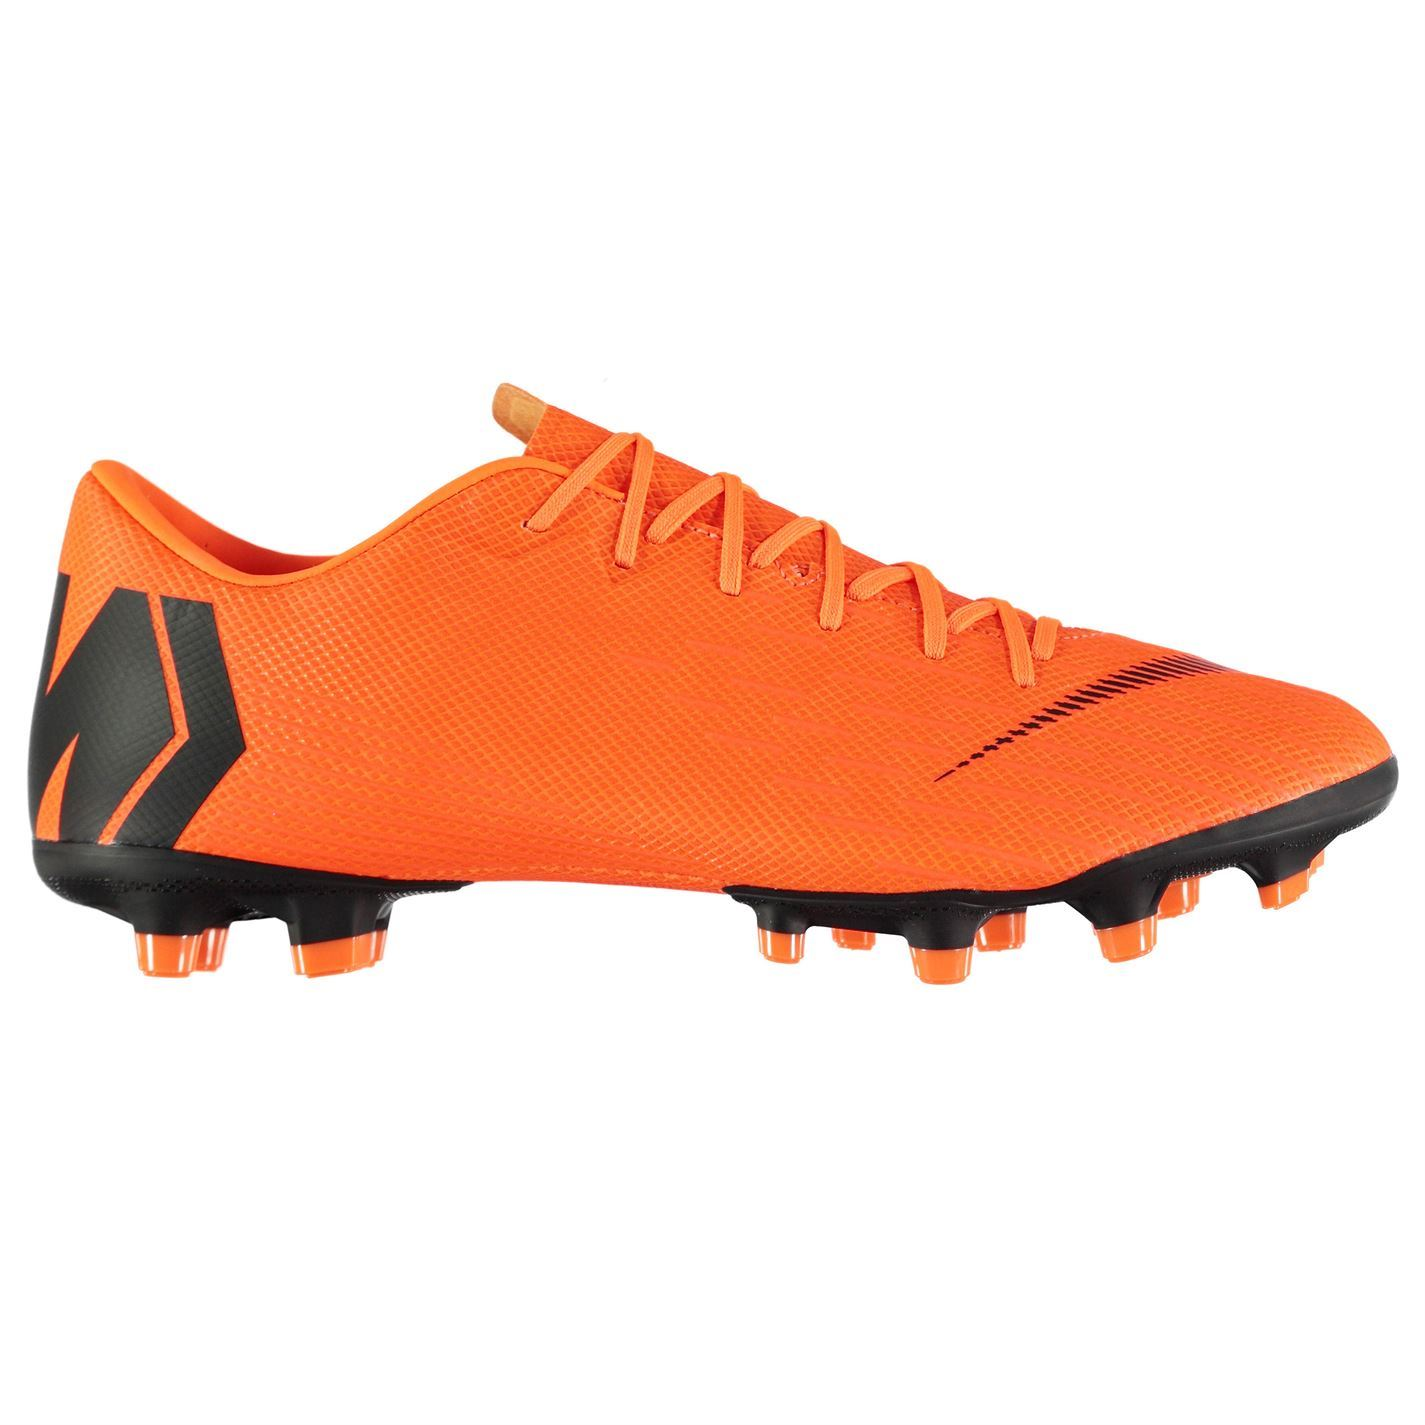 Nike Mercurial Vapor Academy Firm Ground Football Boots Mens Soccer ... 3d9017a350b43